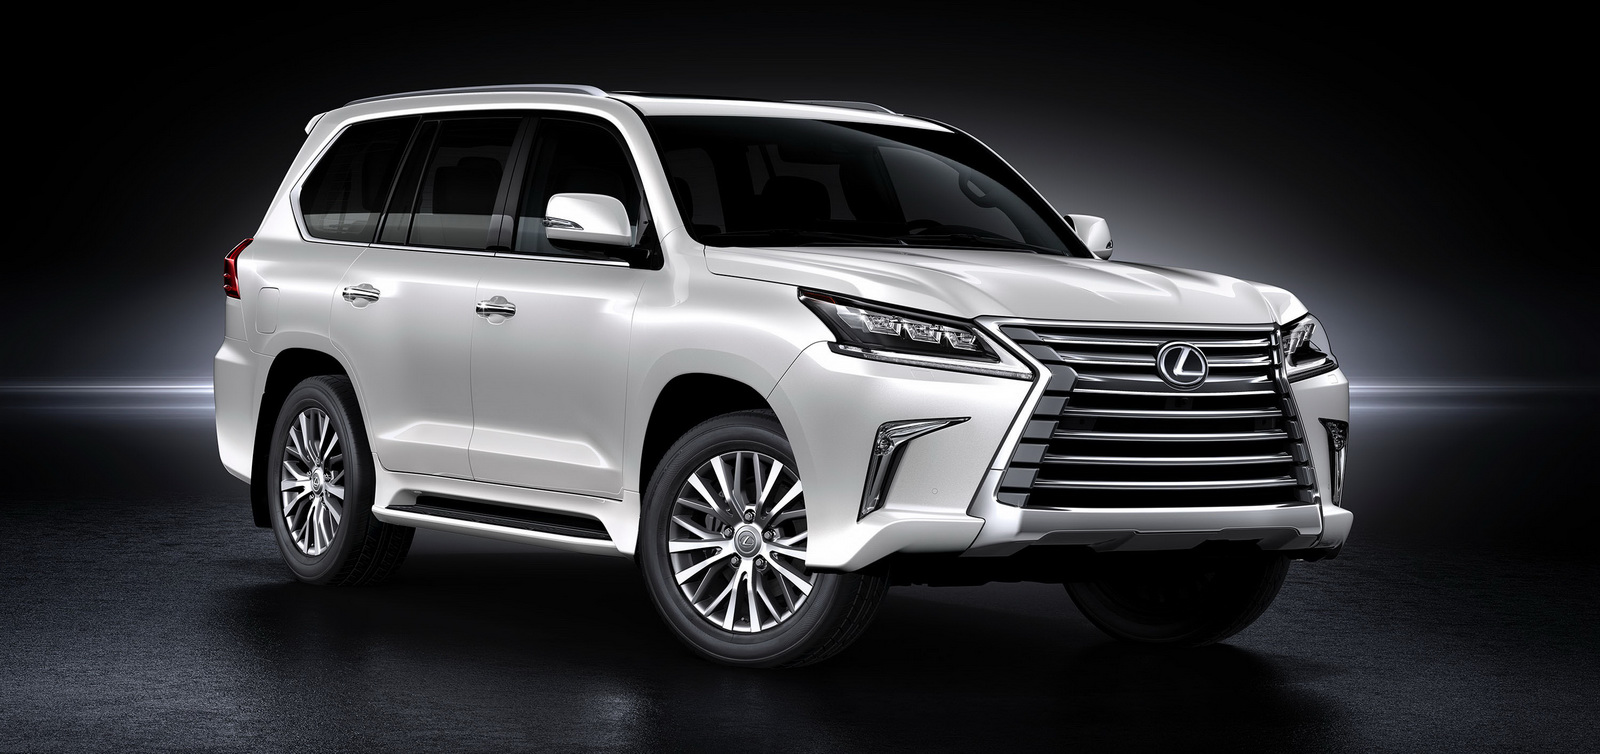 2016 lexus lx570 suv photo gallery car gallery premium luxury suvs autocar india. Black Bedroom Furniture Sets. Home Design Ideas